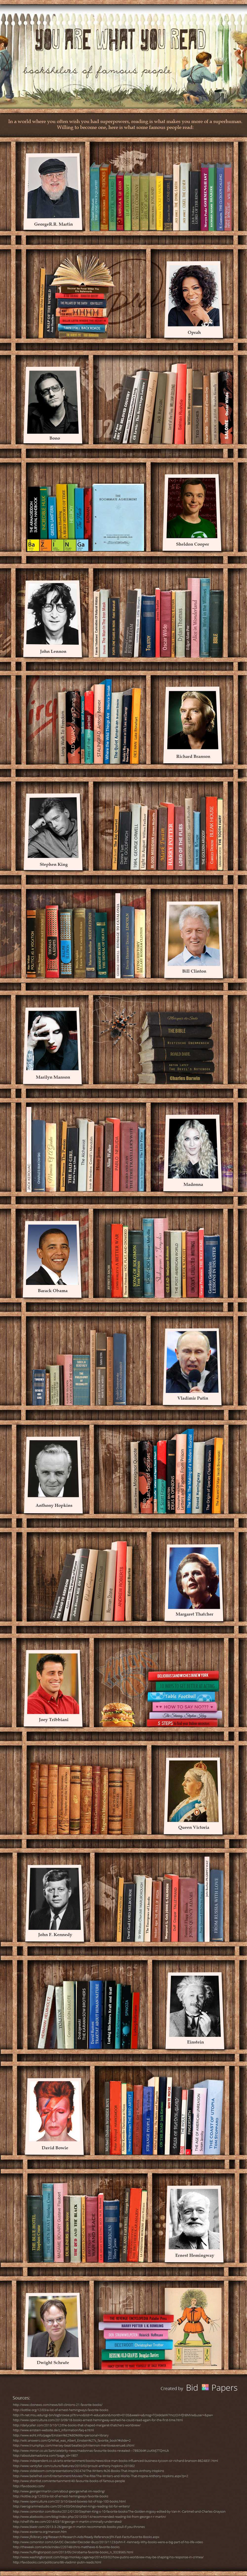 Favorite Books Of Famous People